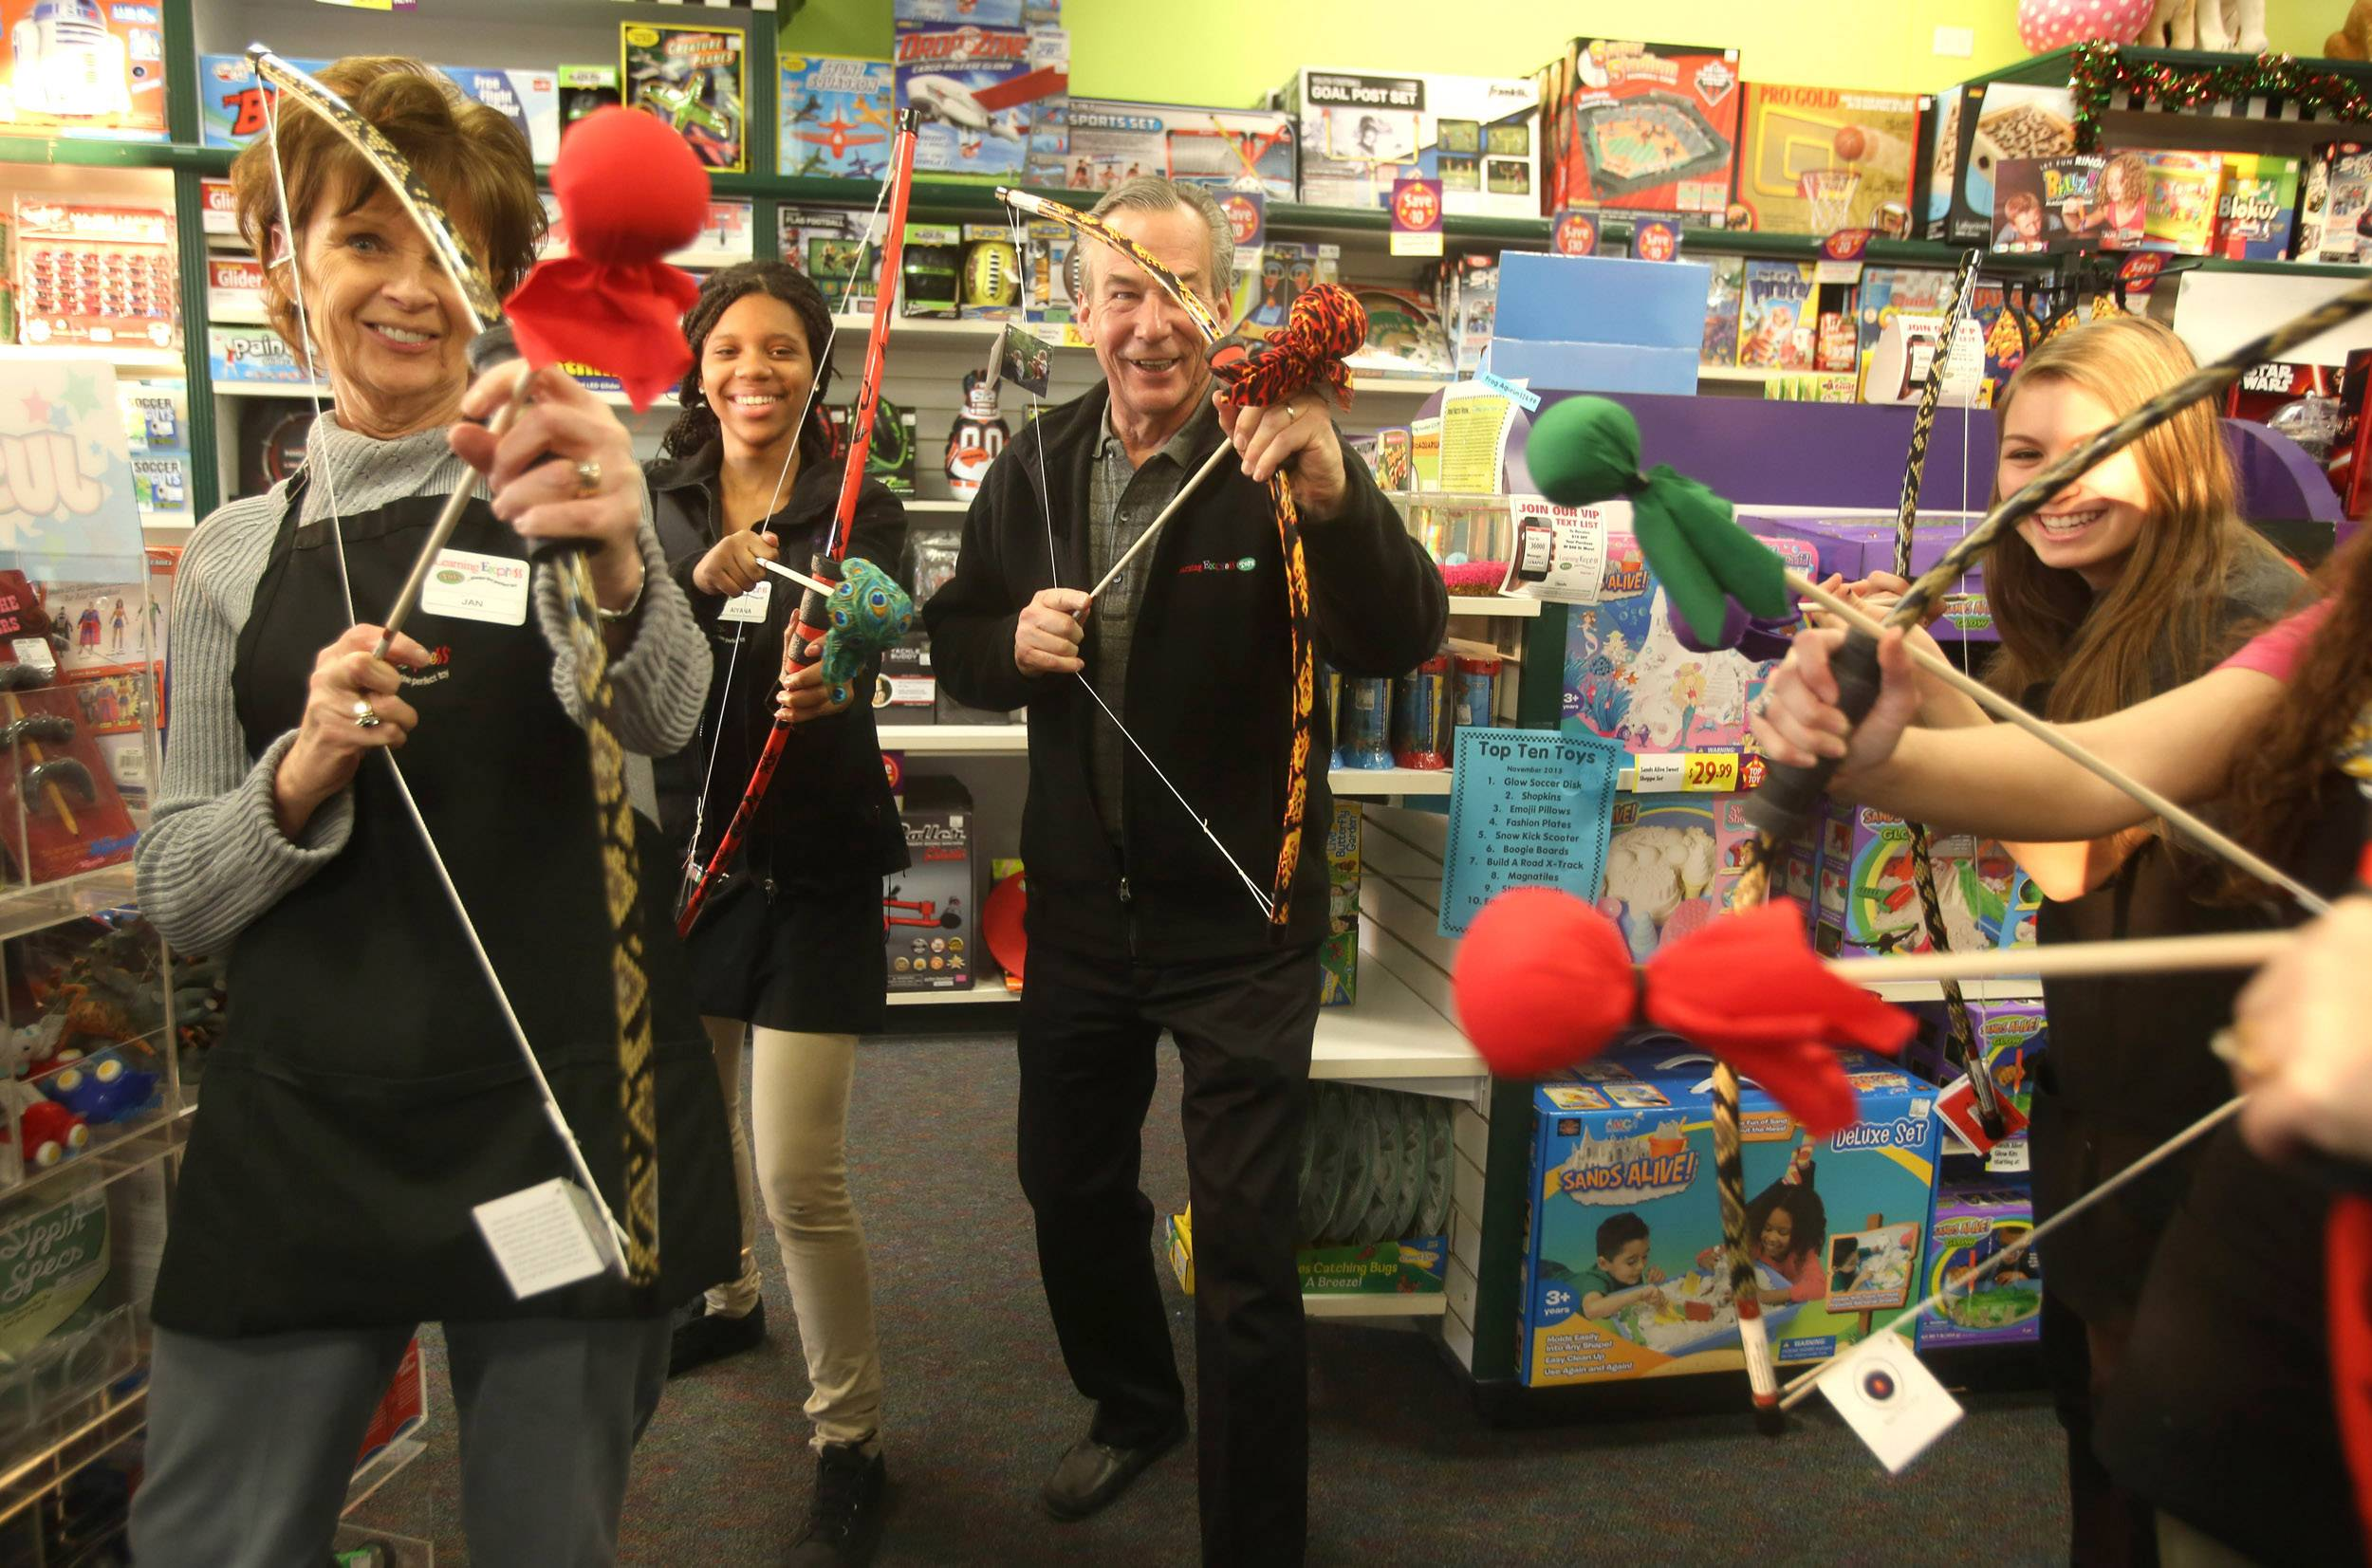 Learning Express store employees led by owner Steve Zdunek, center, pose for a photo with Two Bros Bows, with bows and arrows that have beanbag tips, at his store in Naperville.